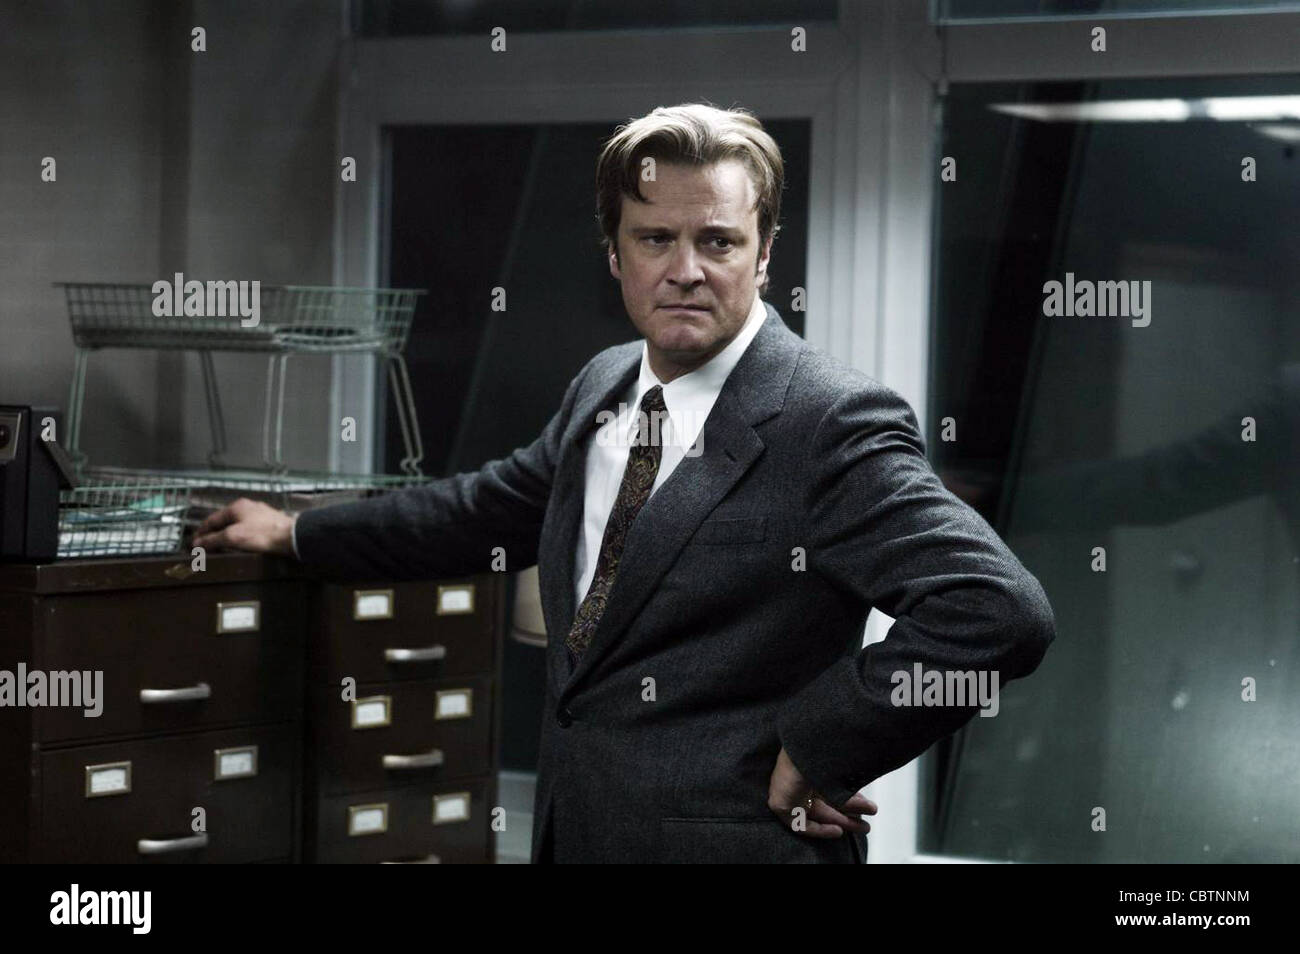 TINKER TAILOR SOLDIER SPY (2011) COLIN FIRTH TOMAS ALFREDSON (DIR) 002 MOVIESTORE COLLECTION LTD - Stock Image